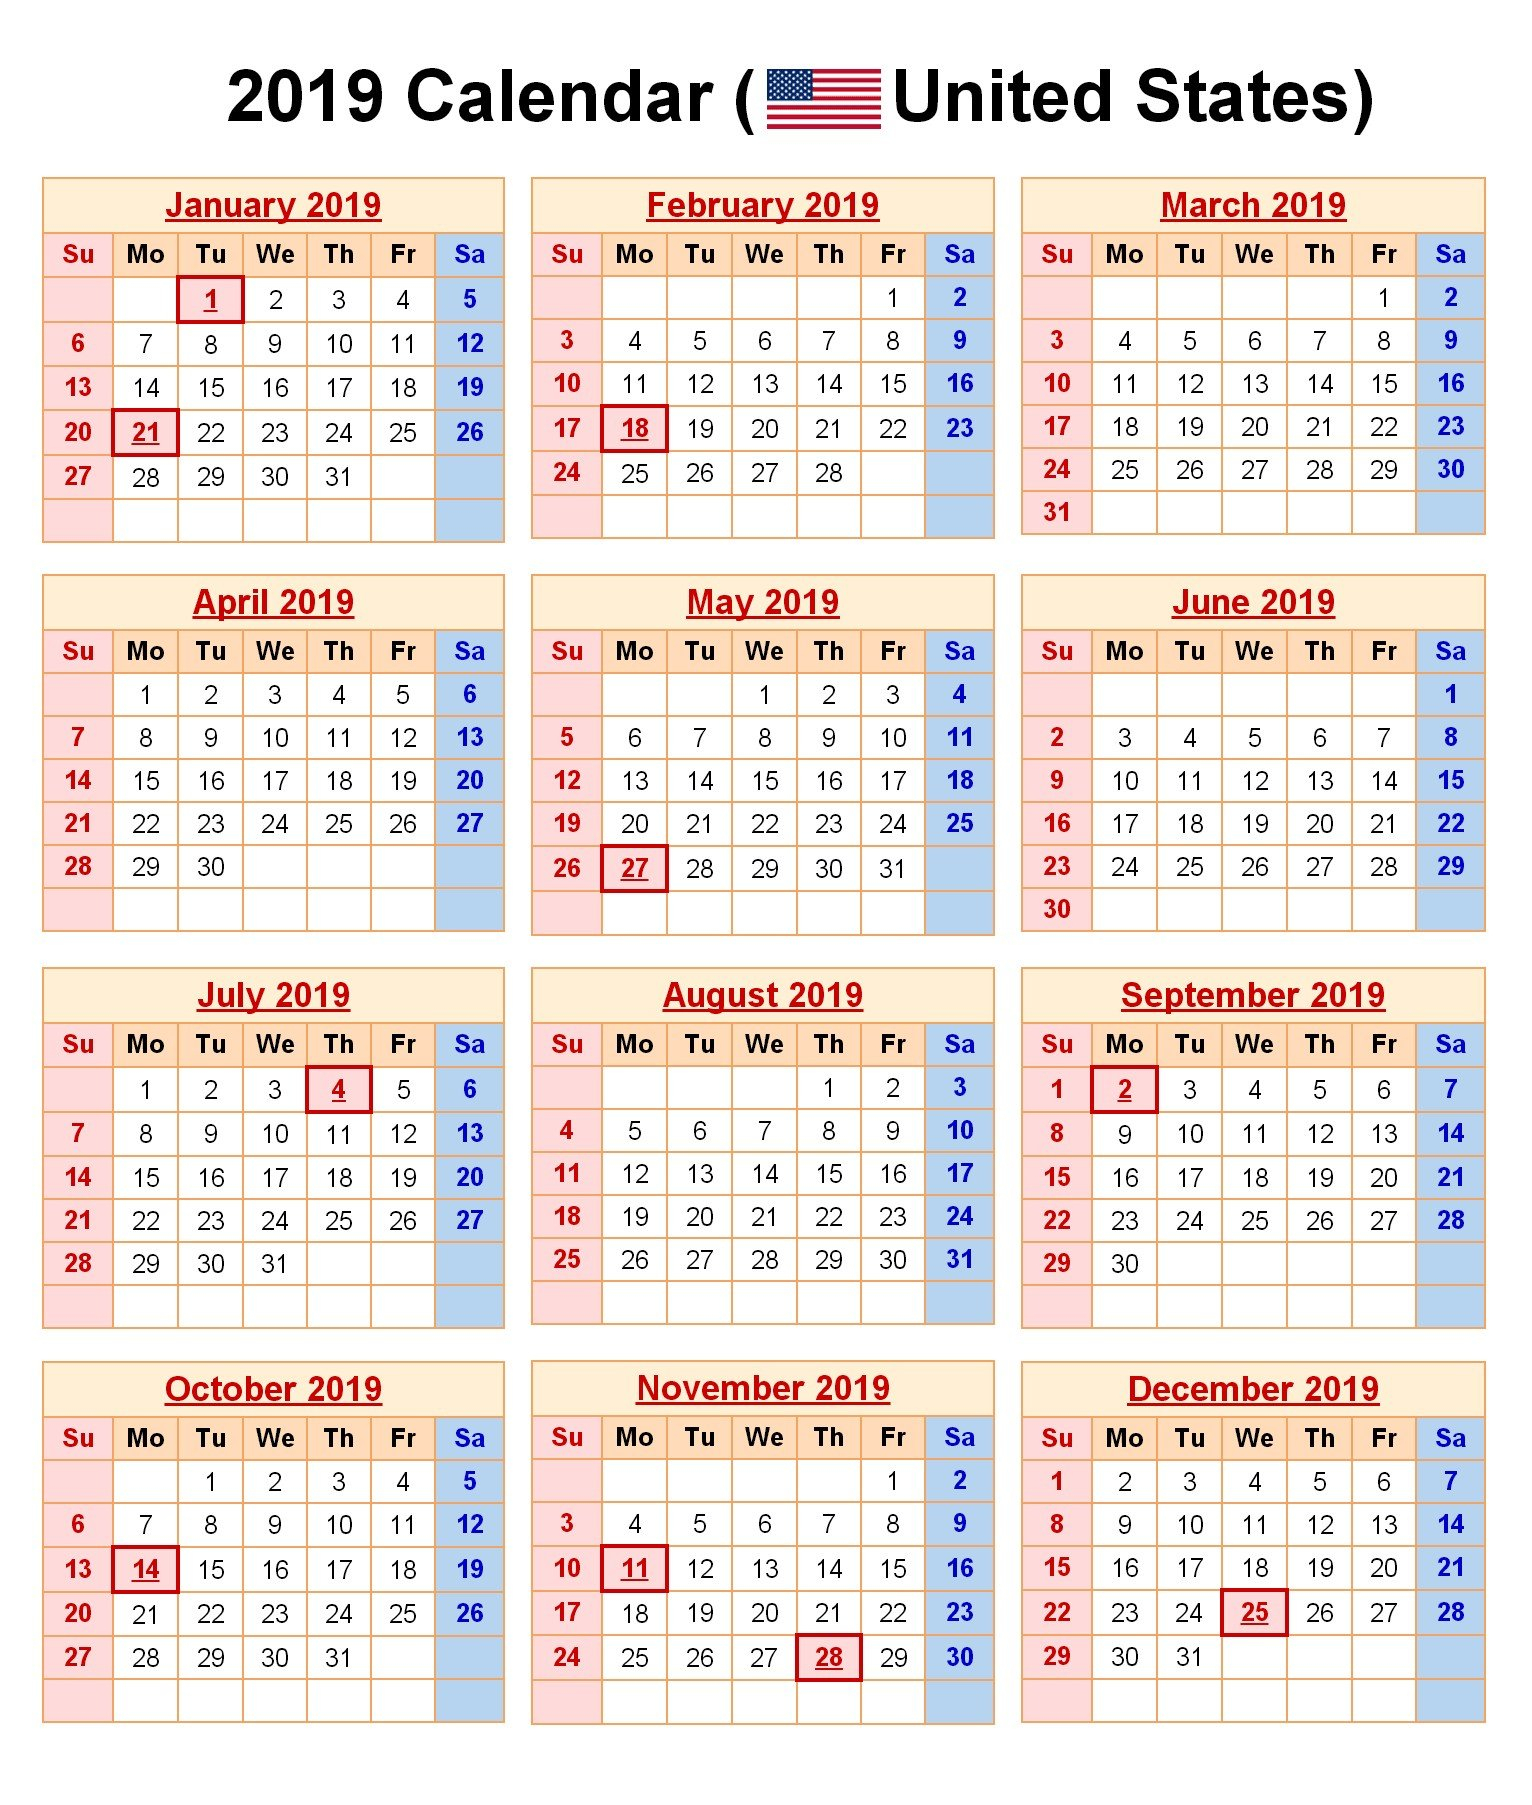 2019 Printable Calendar With Us Holidays Printable Calendar 2019 Calendar 2019 United States